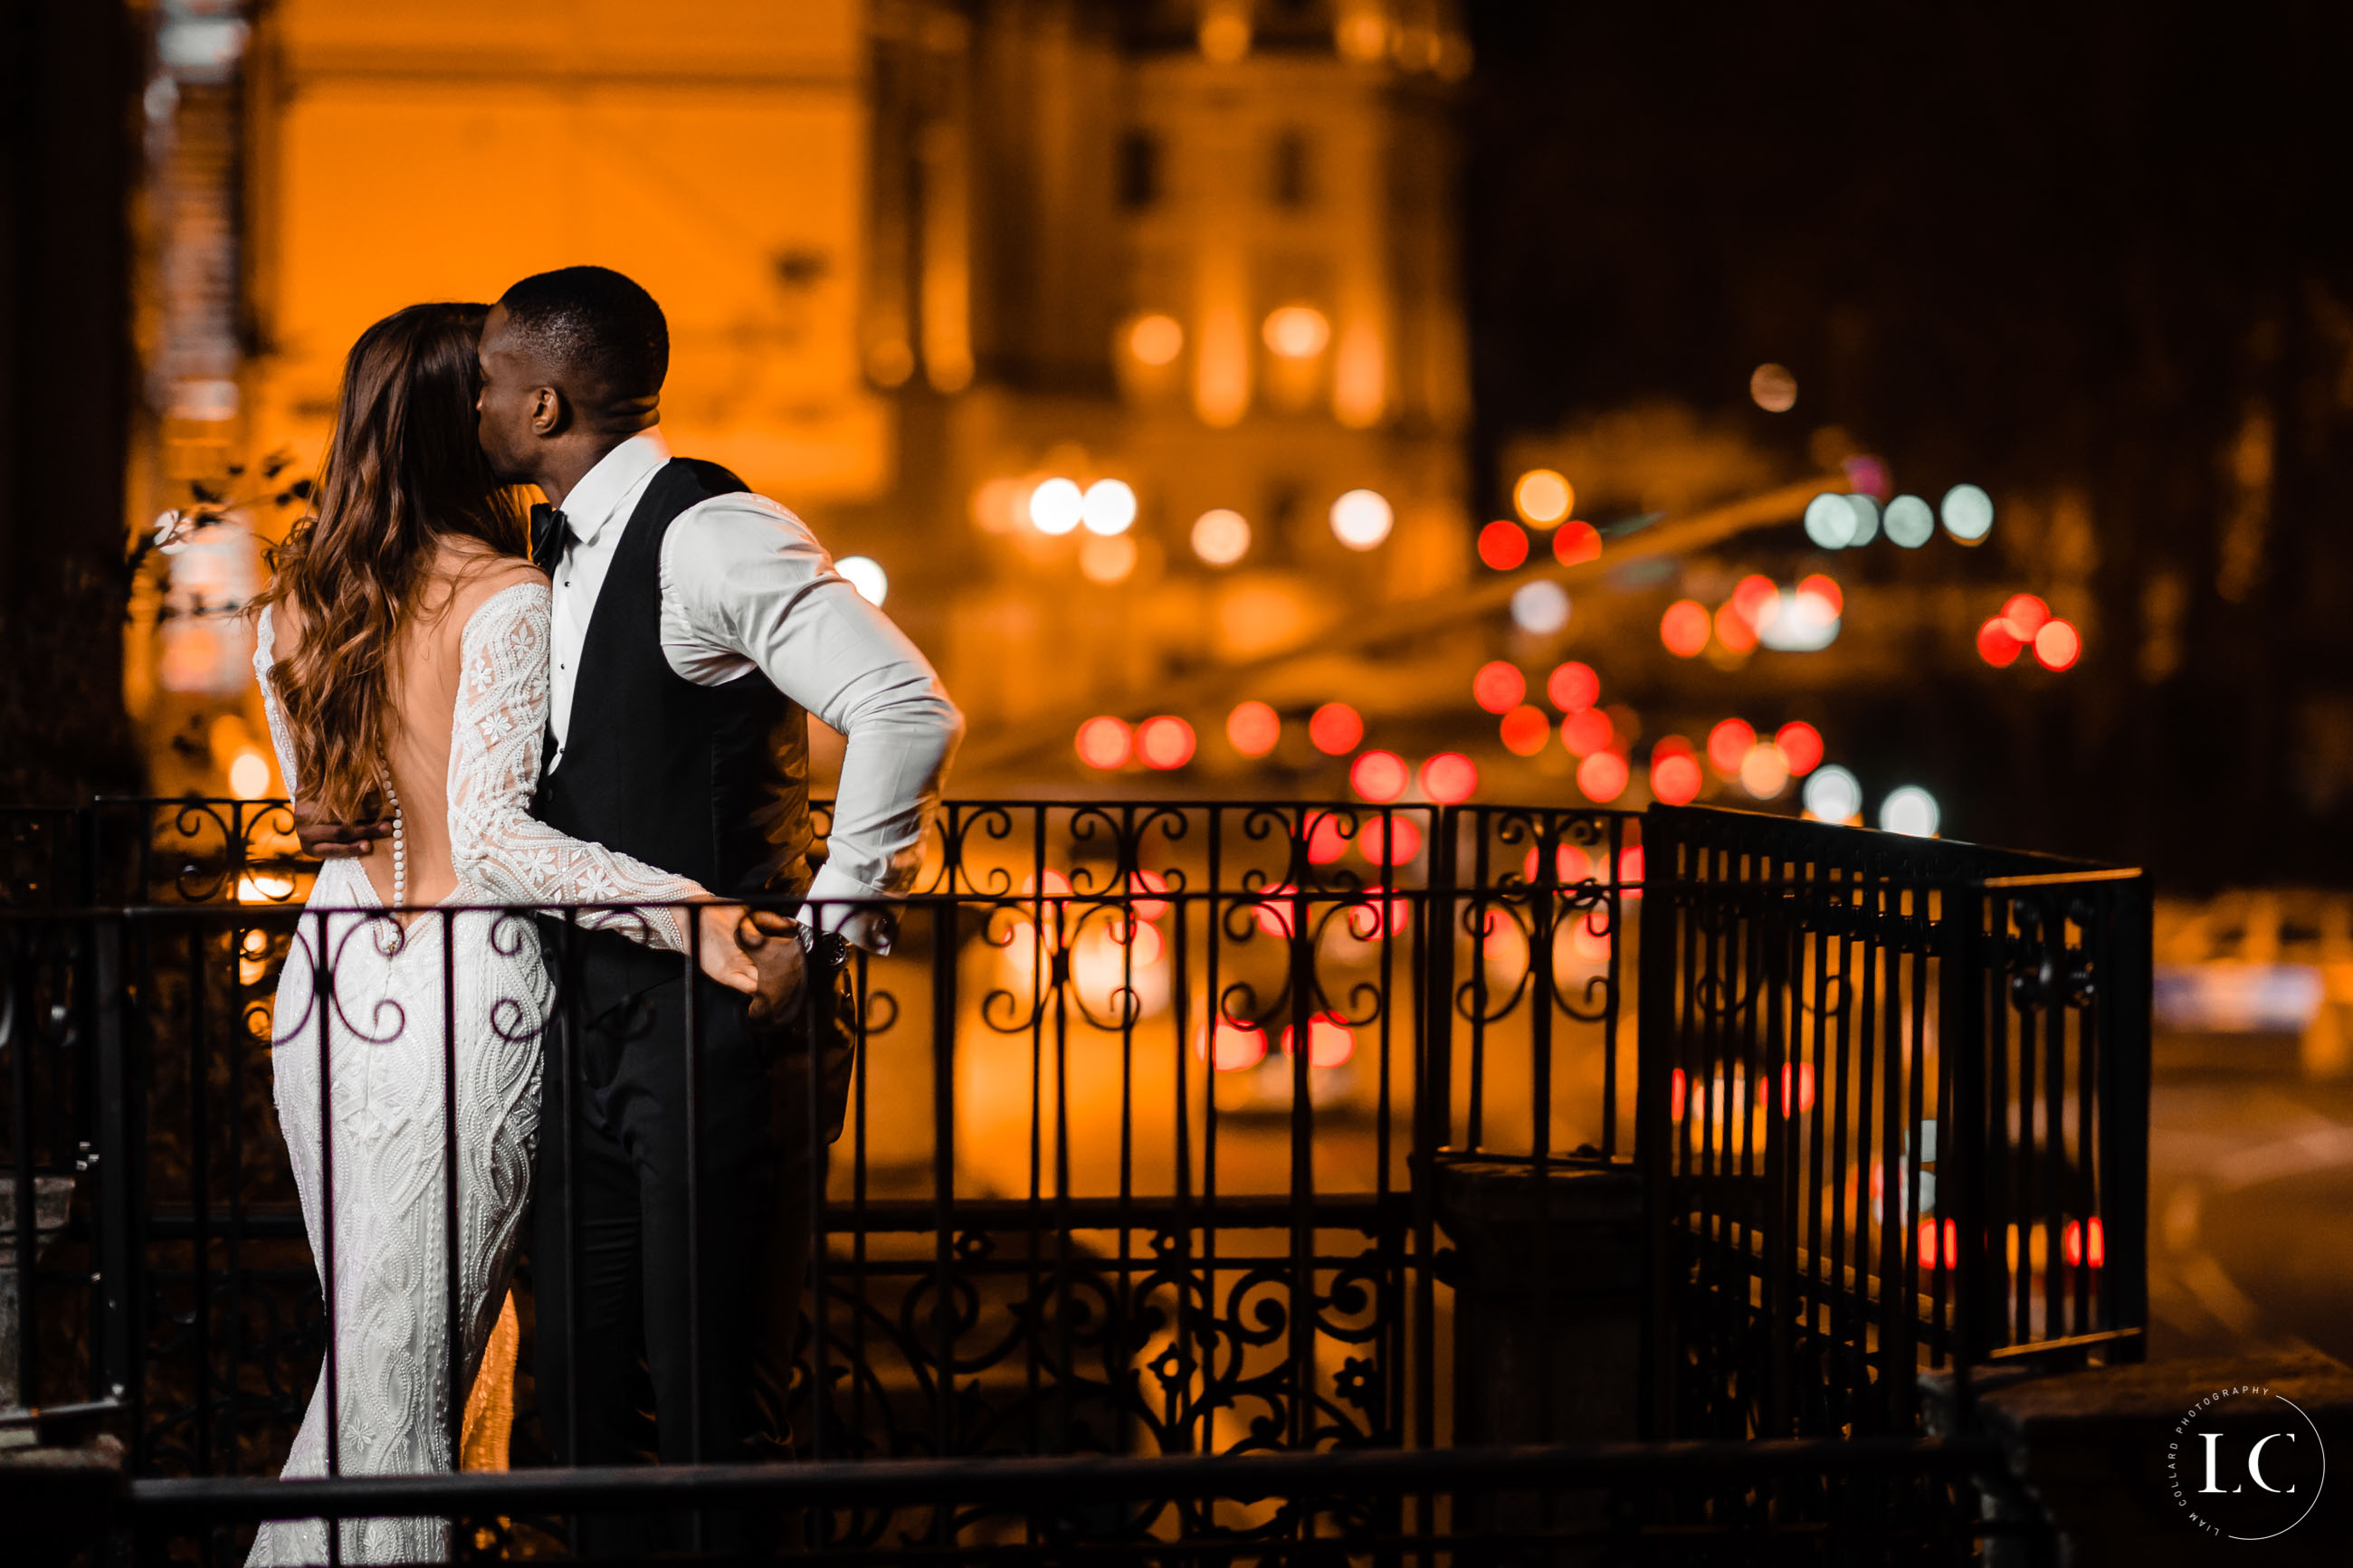 Couple embracing at night